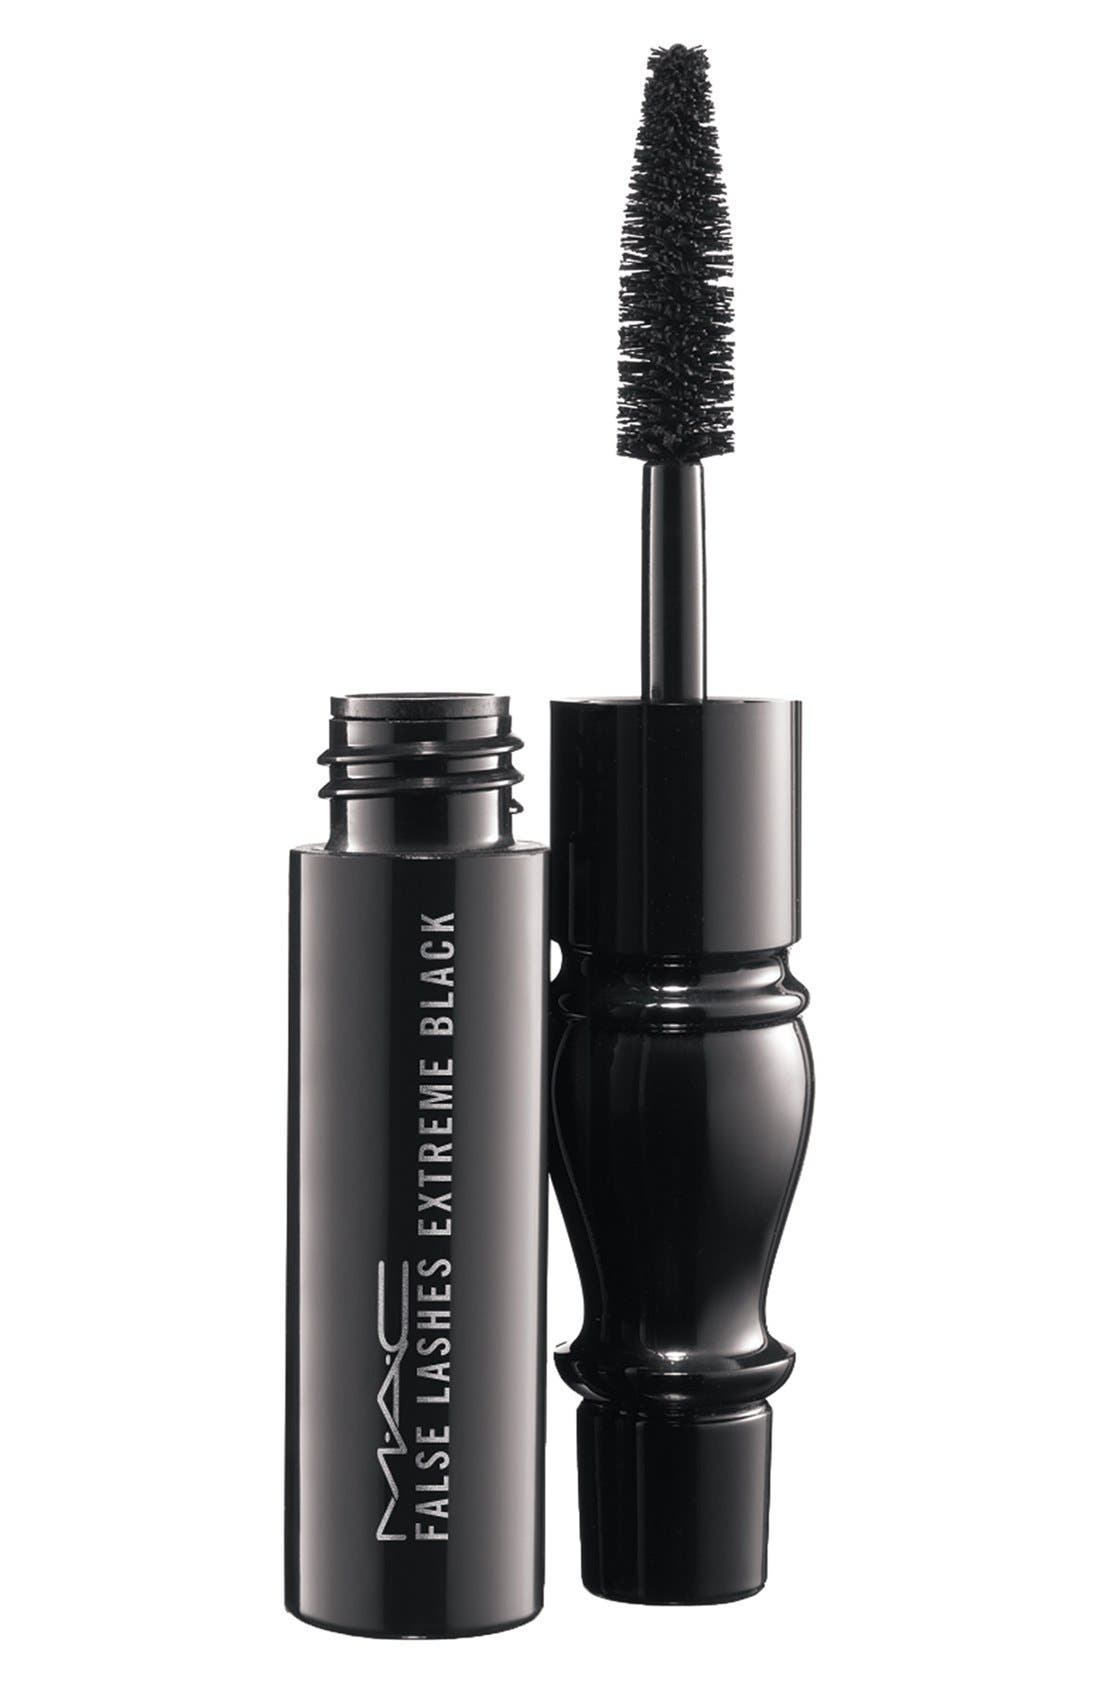 MAC Little MAC False Lashes Extreme Black Mascara